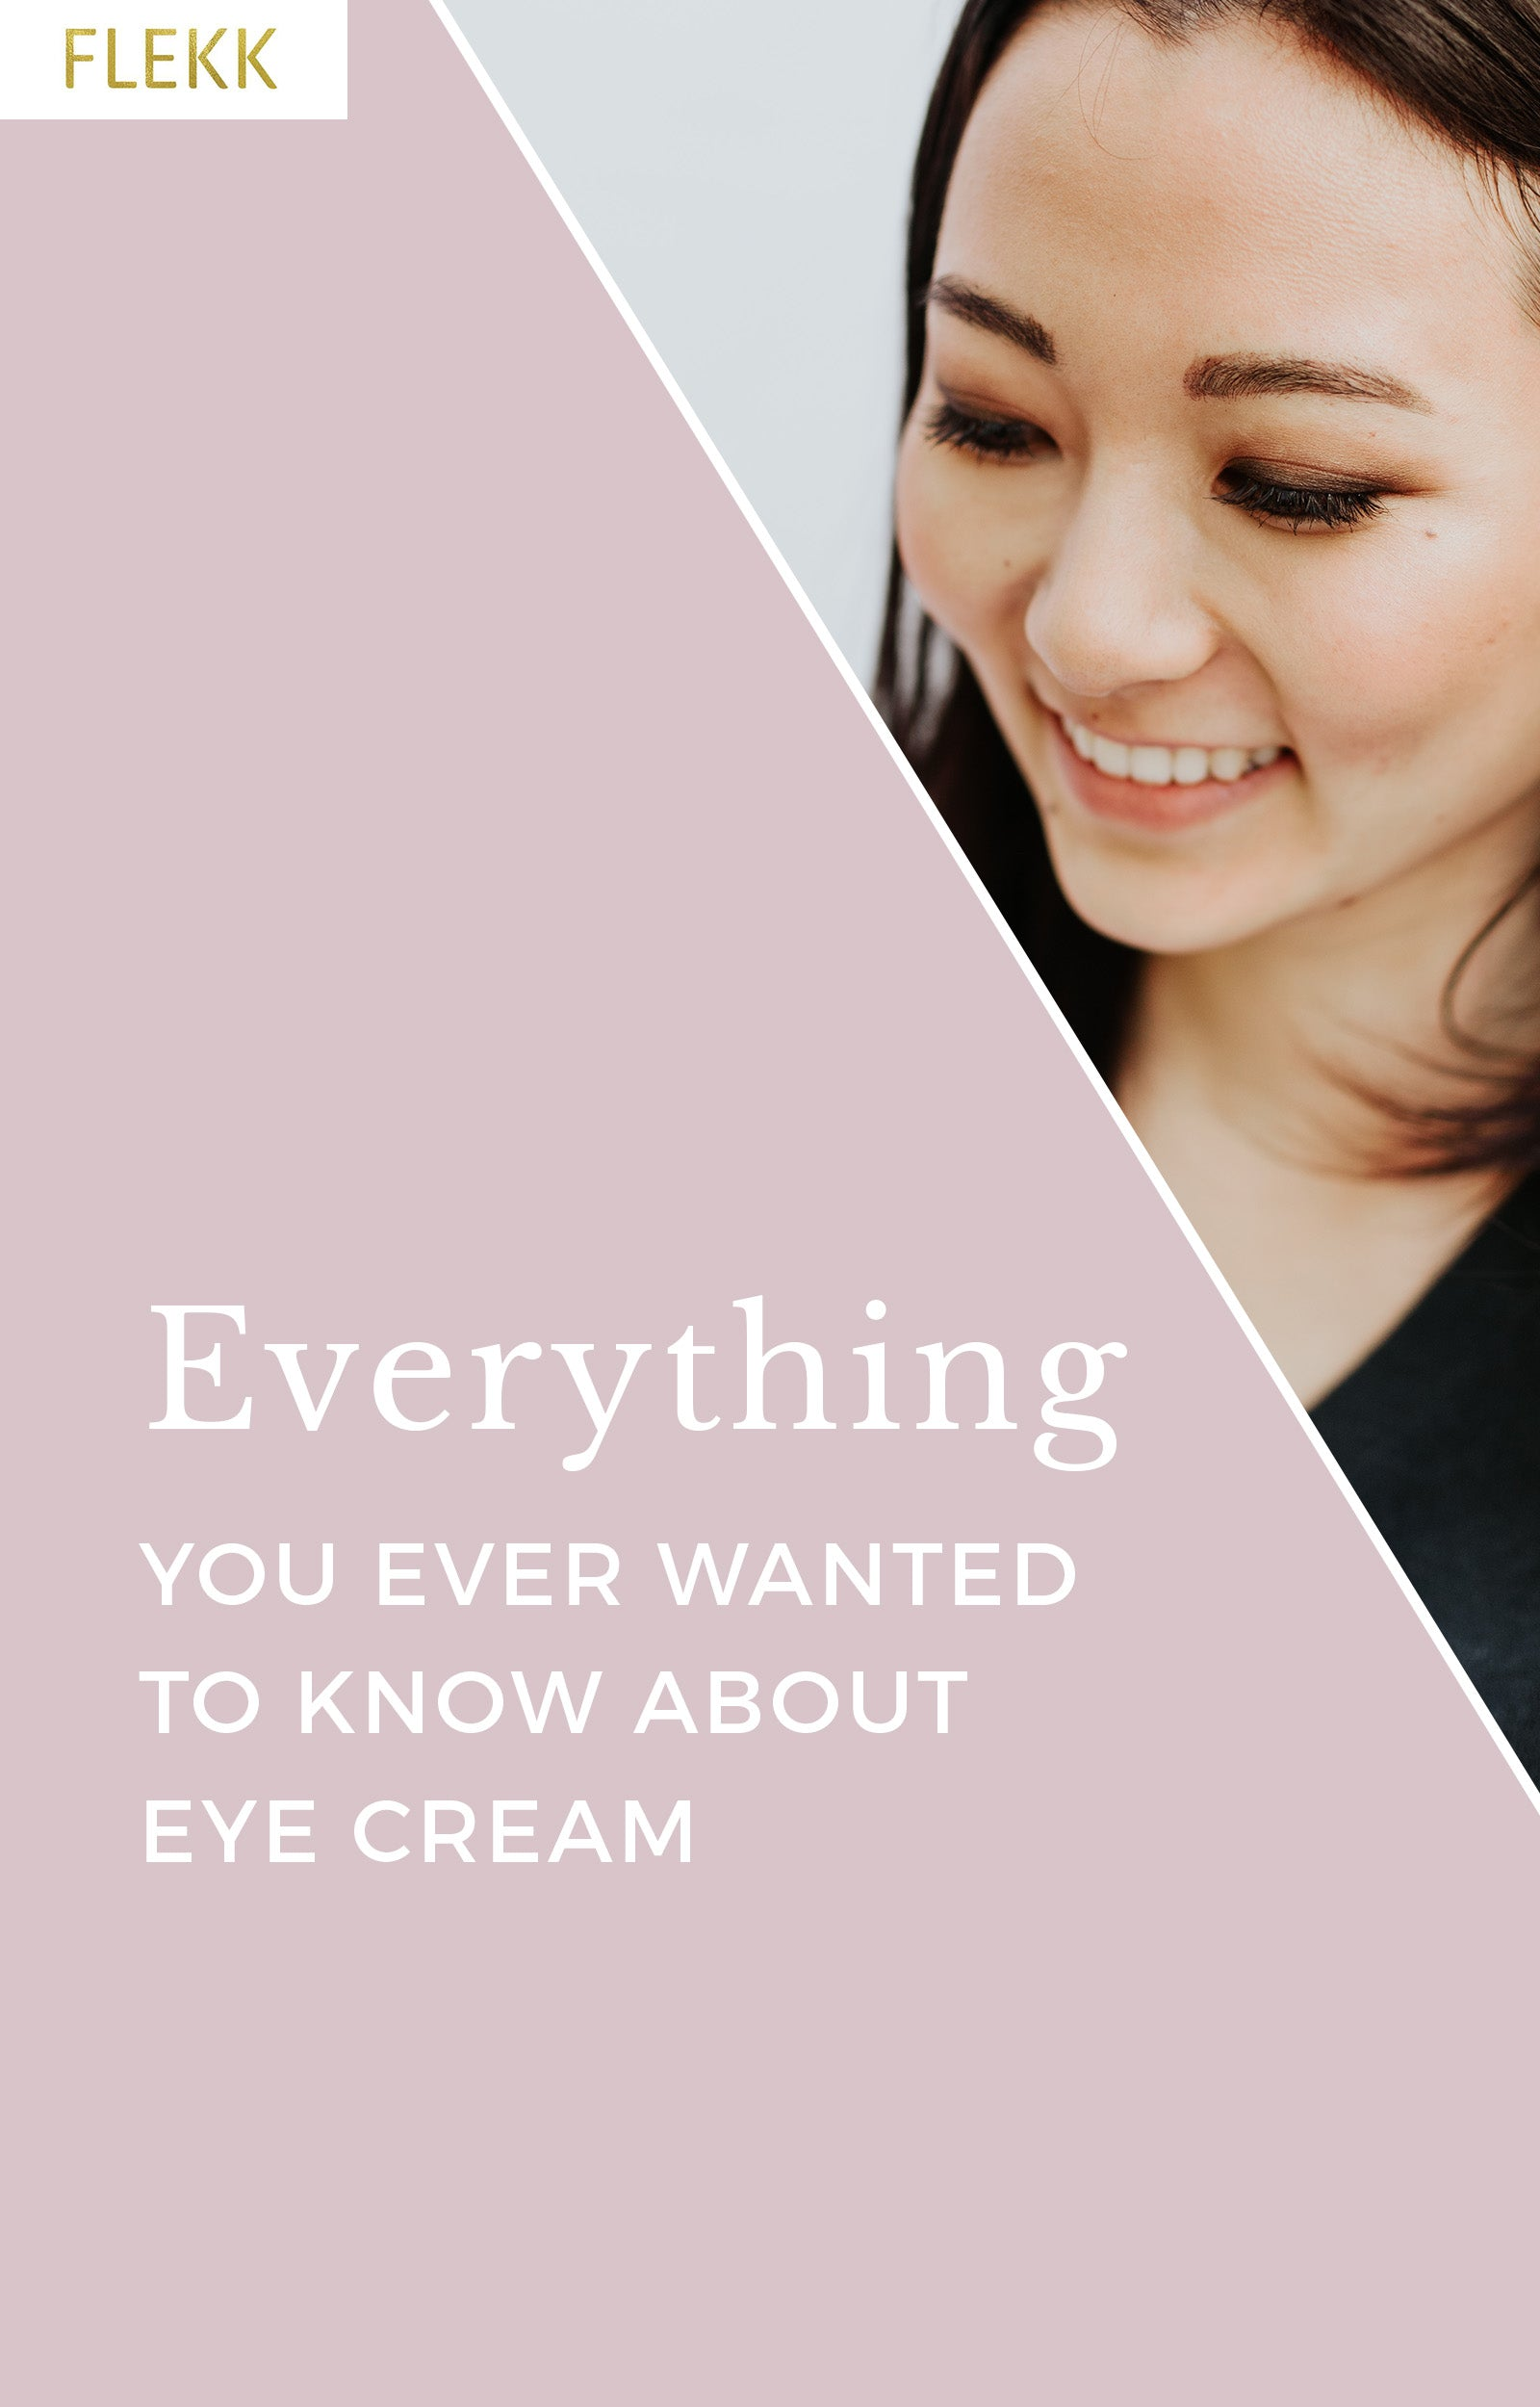 Eye cream is the one non-makeup product that can help your eyeshadow look better.  Consistently using it helps the eyes look youthful, and it also combats the signs of aging. The tips in this article will teach you everything you need to know about eye cream. #eyecream #flekkcosmetics #eyemakeup #makeuptips #antiaging